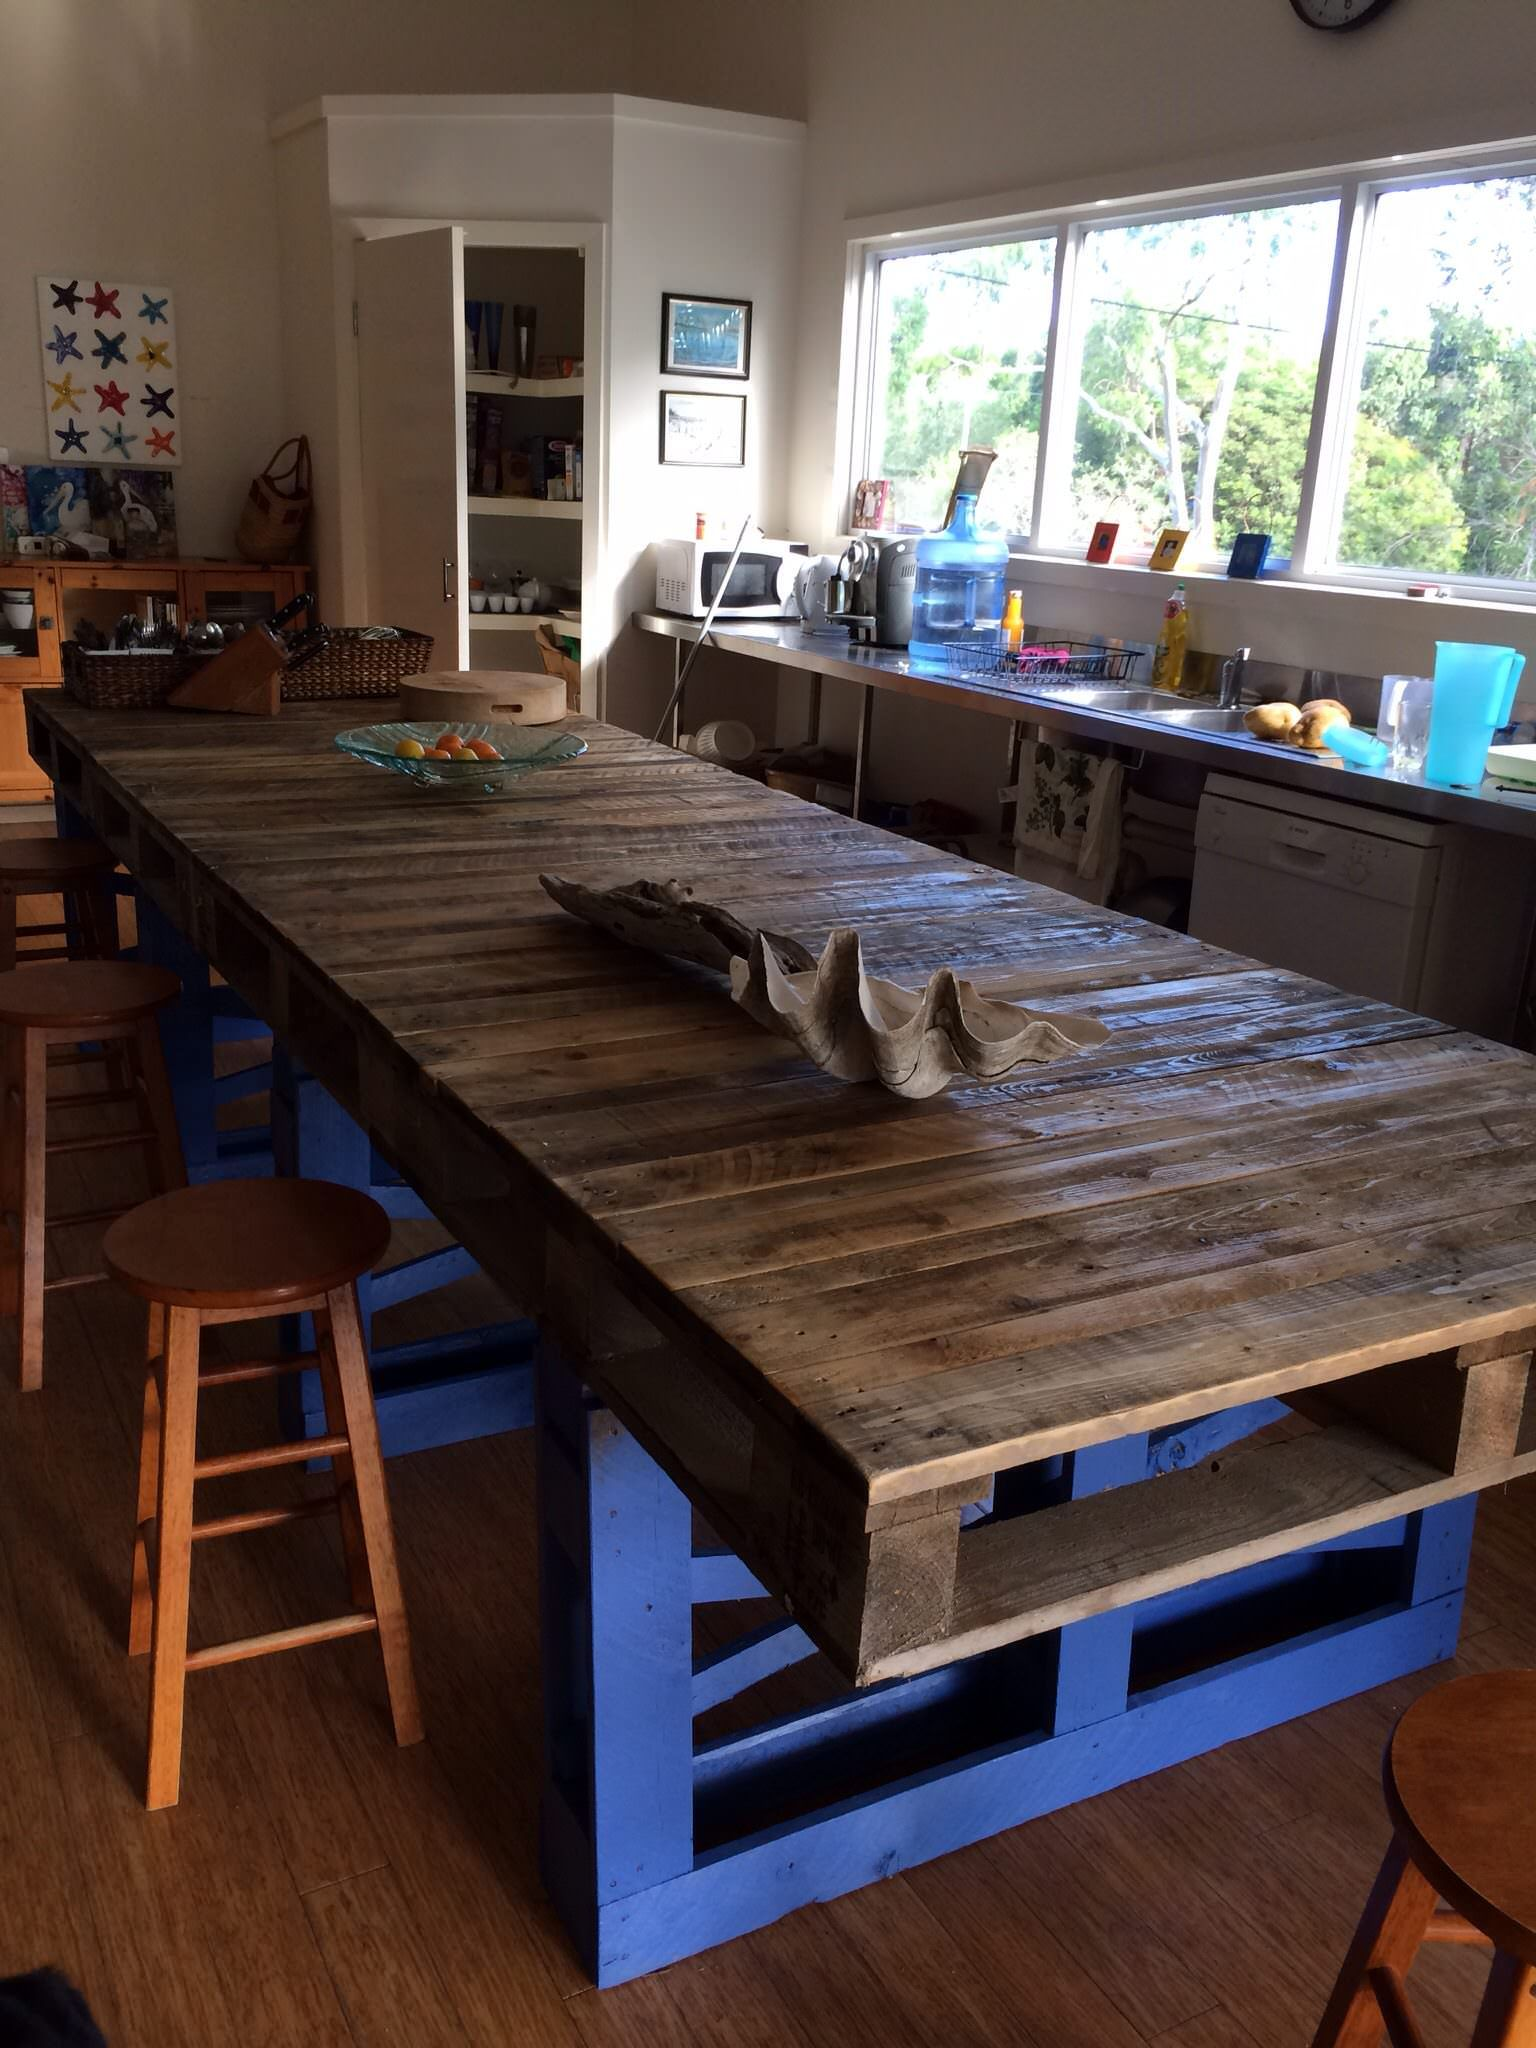 #Kitchen, #PalletTable, #RepurposedPallet Here is a beautiful modern table made out of pallets. I love particularly the use or the electric blue contrasting with the natural look.